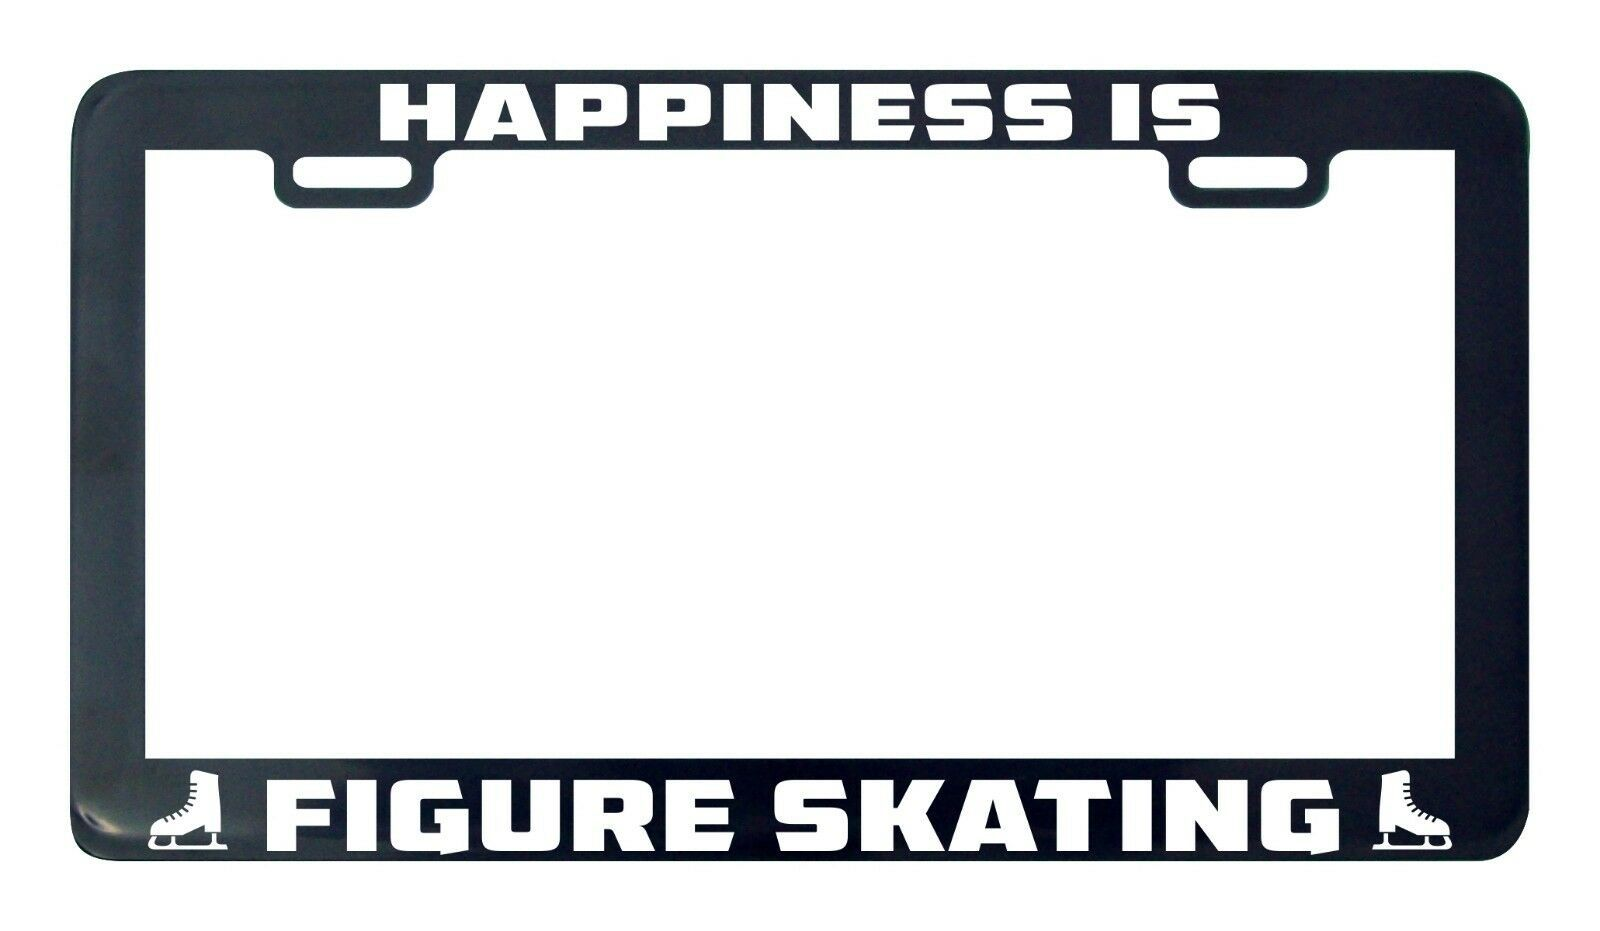 Primary image for Happiness is Figure Skating license plate frame holder